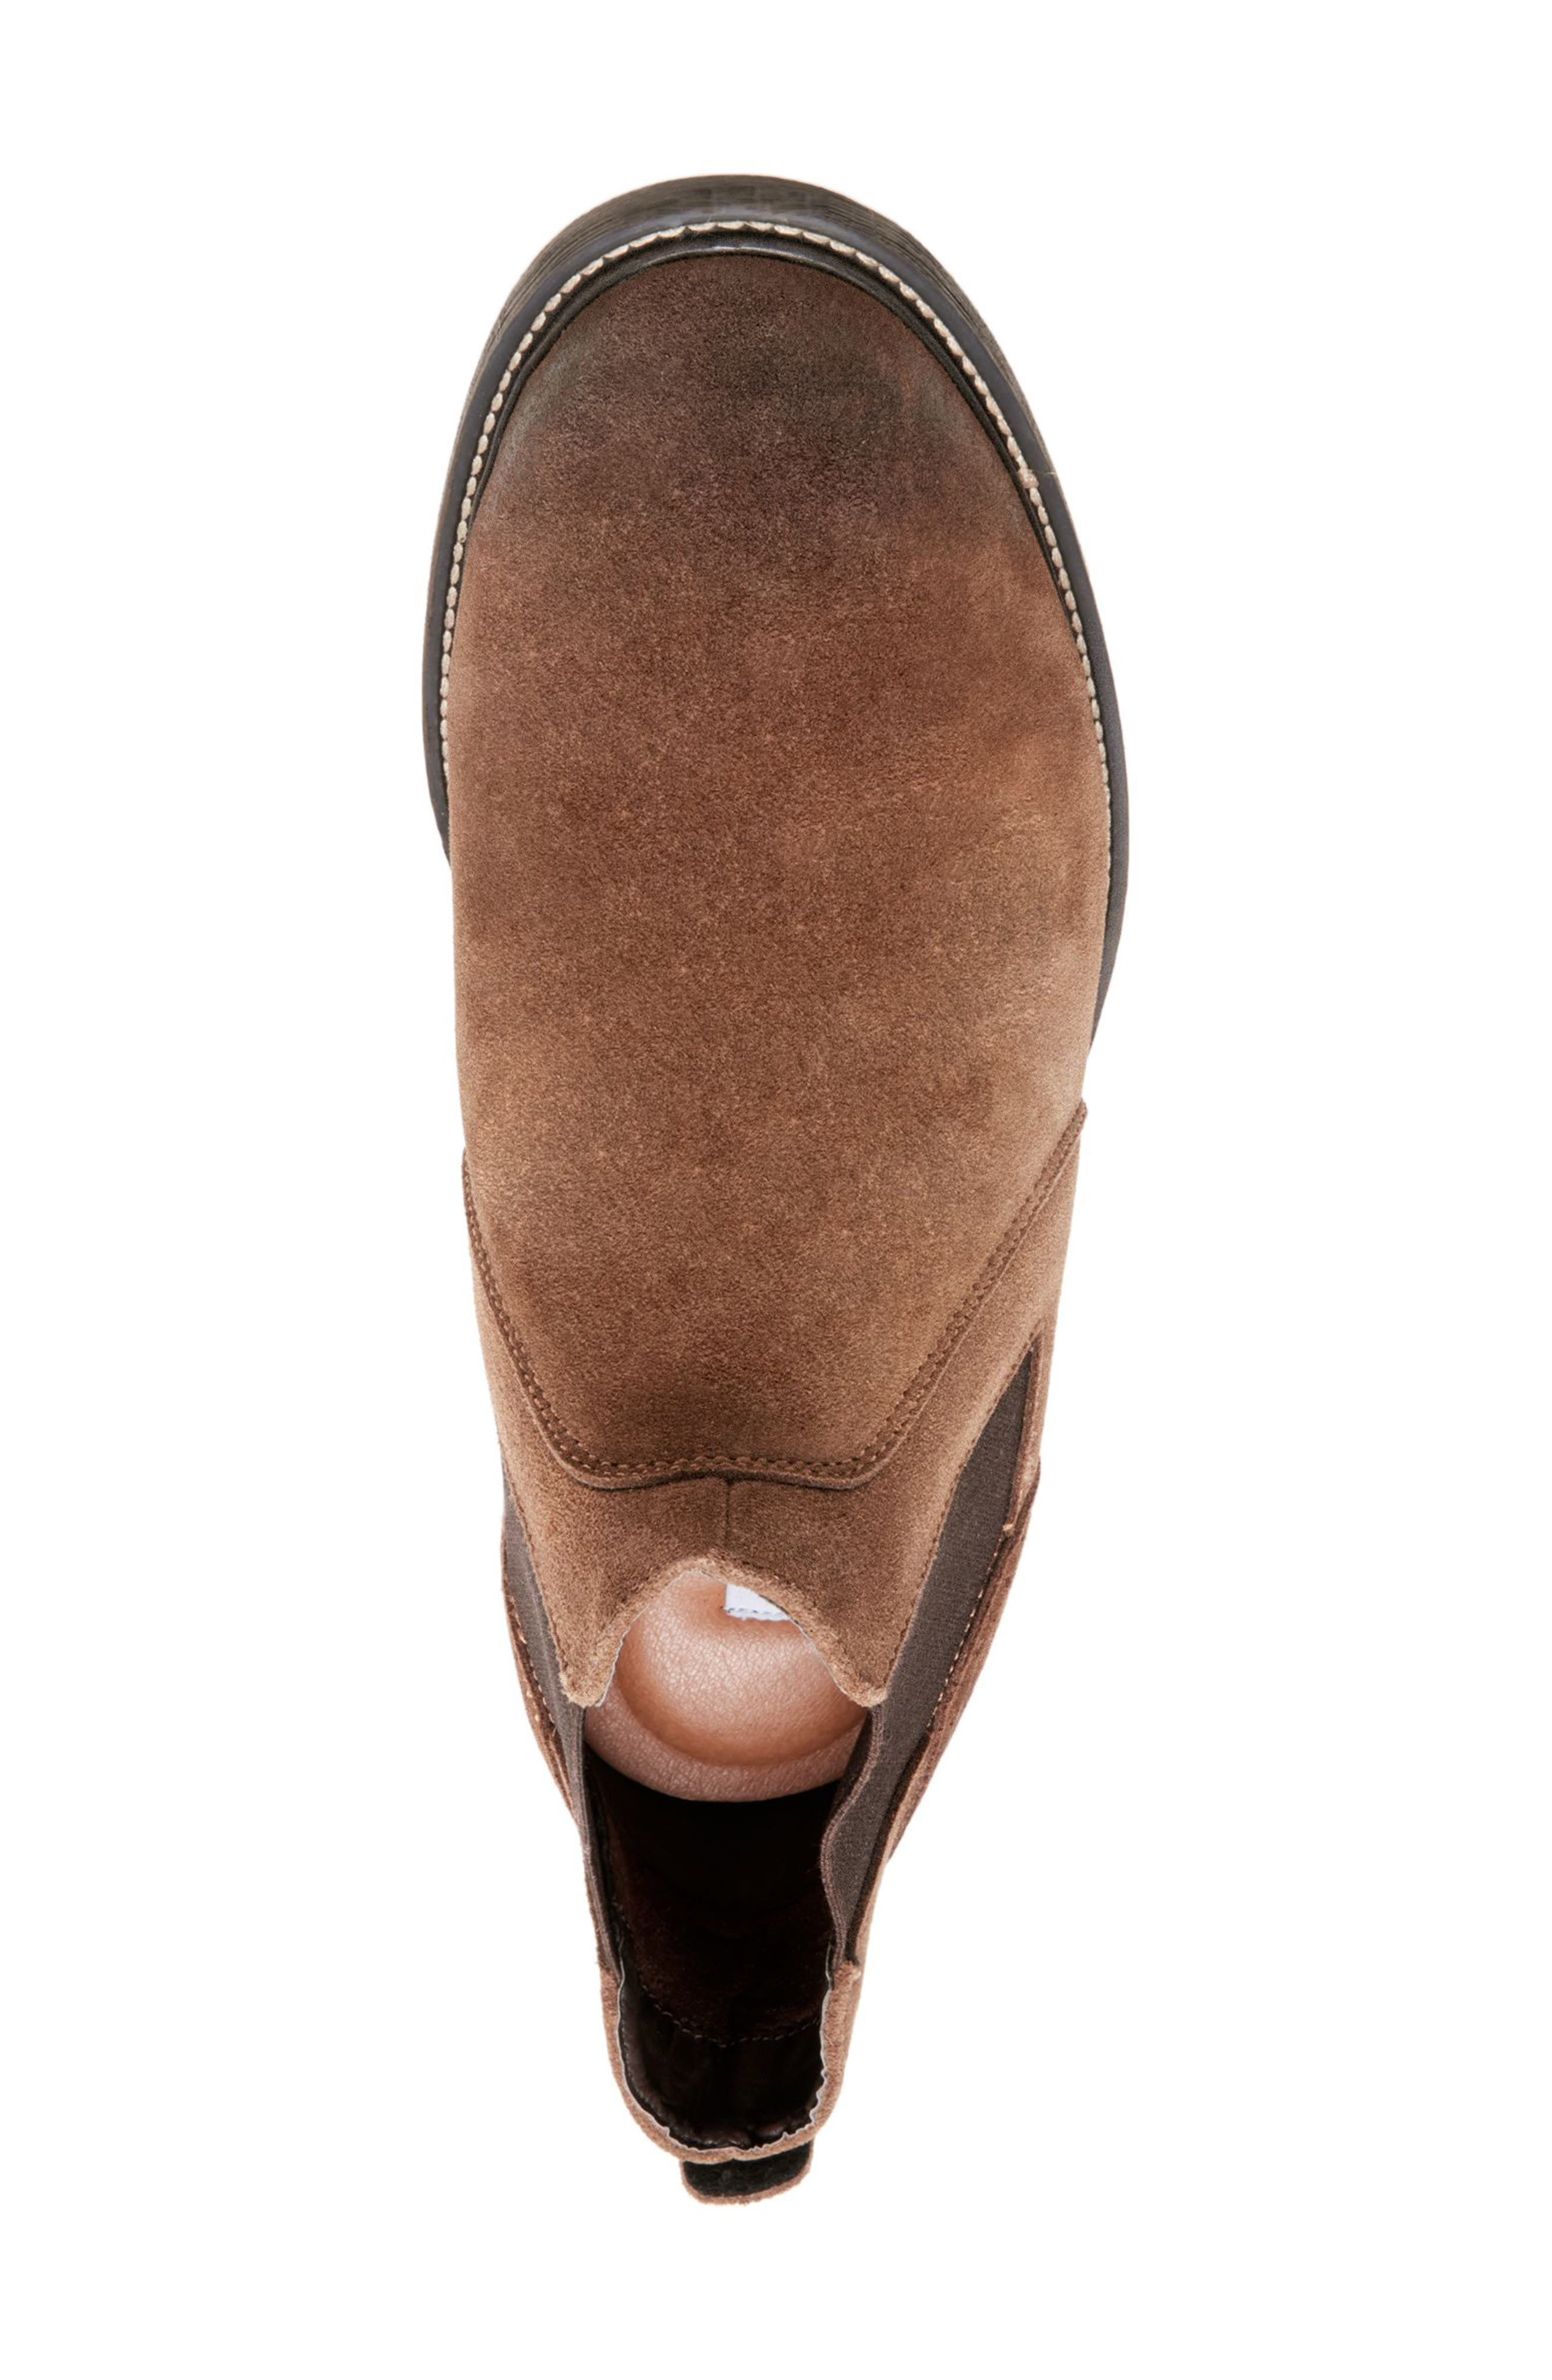 Tampa Chelsea Boot,                             Alternate thumbnail 4, color,                             CAMEL SUEDE